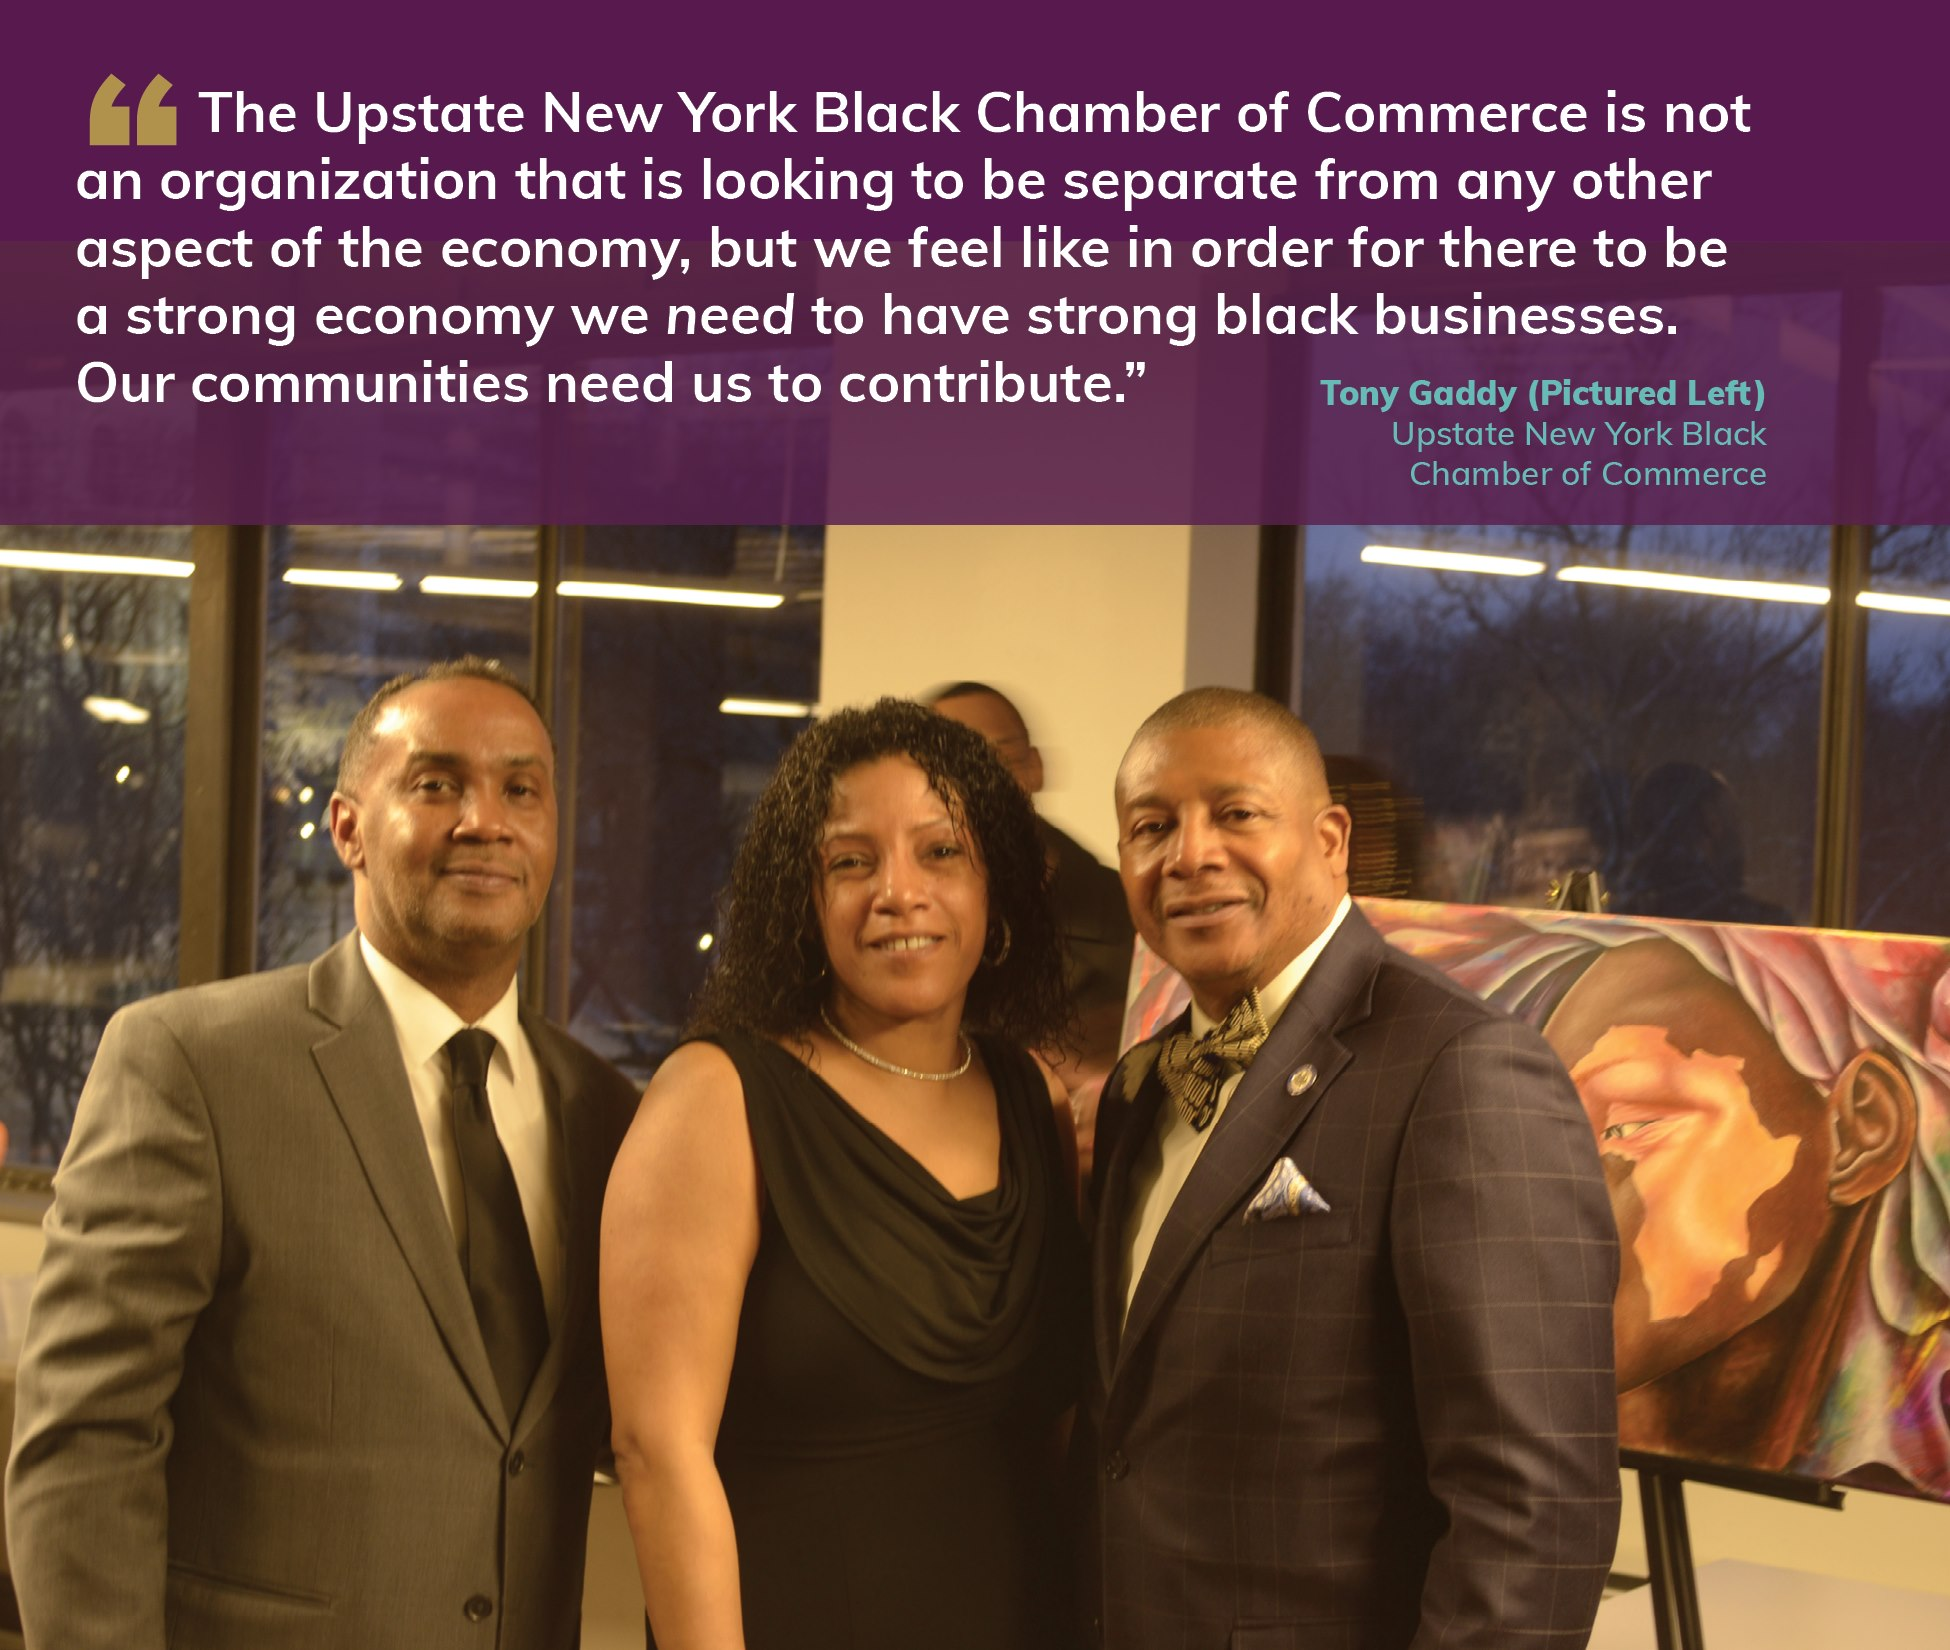 """The Upstate New York Black Chamber of Commerce is not an organization that is looking to be separate from any other aspect of the economy, but we feel like in order for there to be a strong economy we need to have strong black businesses. Our communities need us to contribute."" Tony Gaddy, Upstate New York Black Chamber of Commerce"